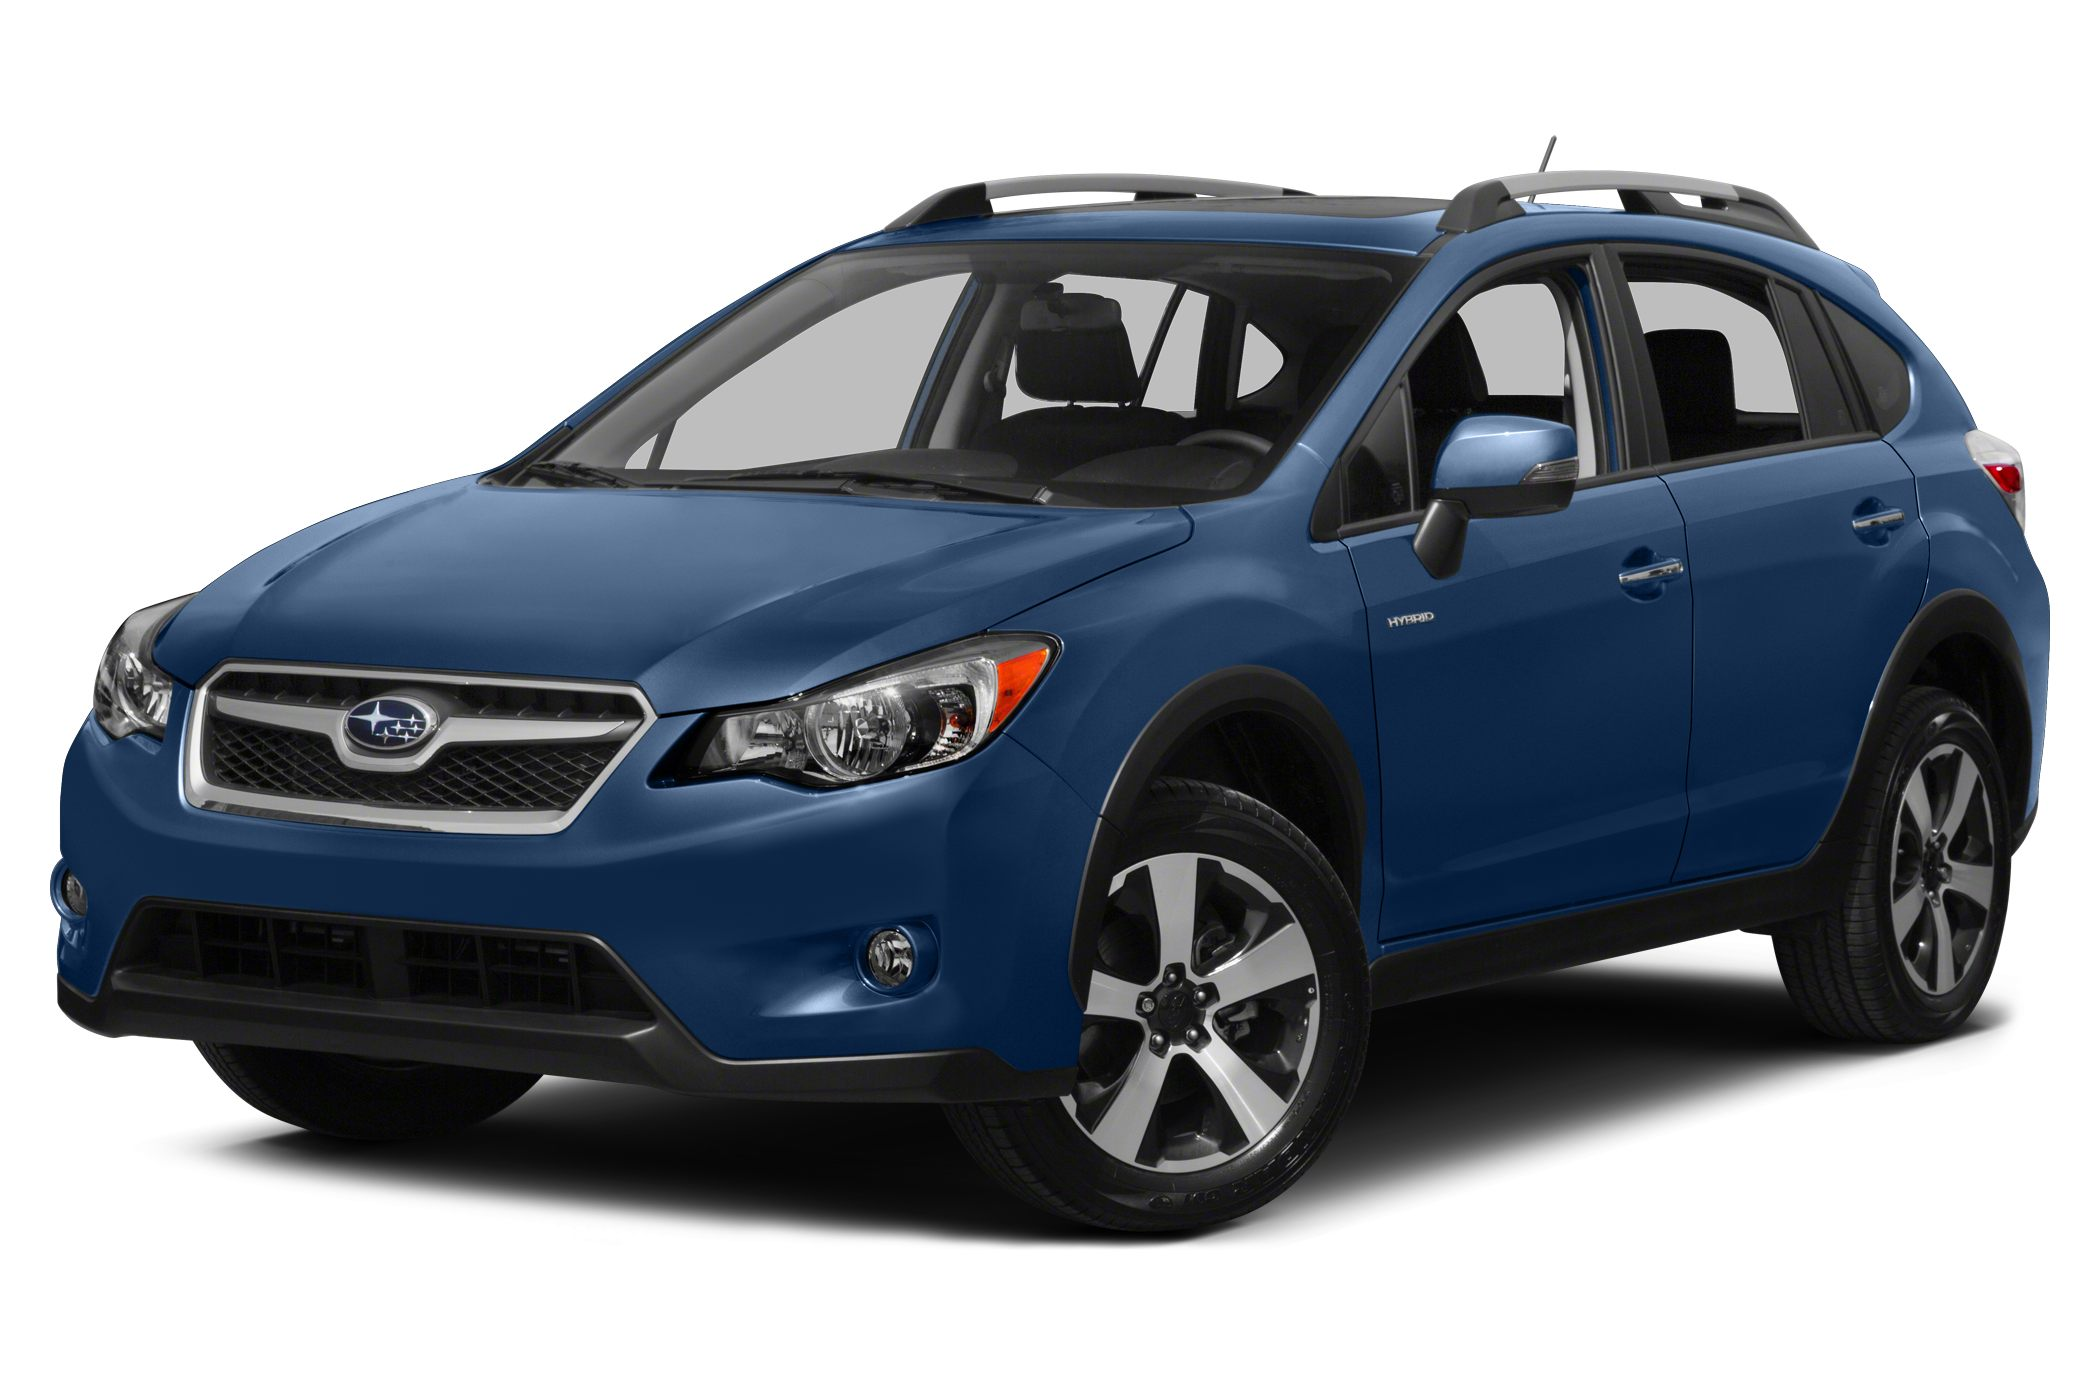 2015 subaru xv crosstrek gets more infotainment safety tech autoblog. Black Bedroom Furniture Sets. Home Design Ideas